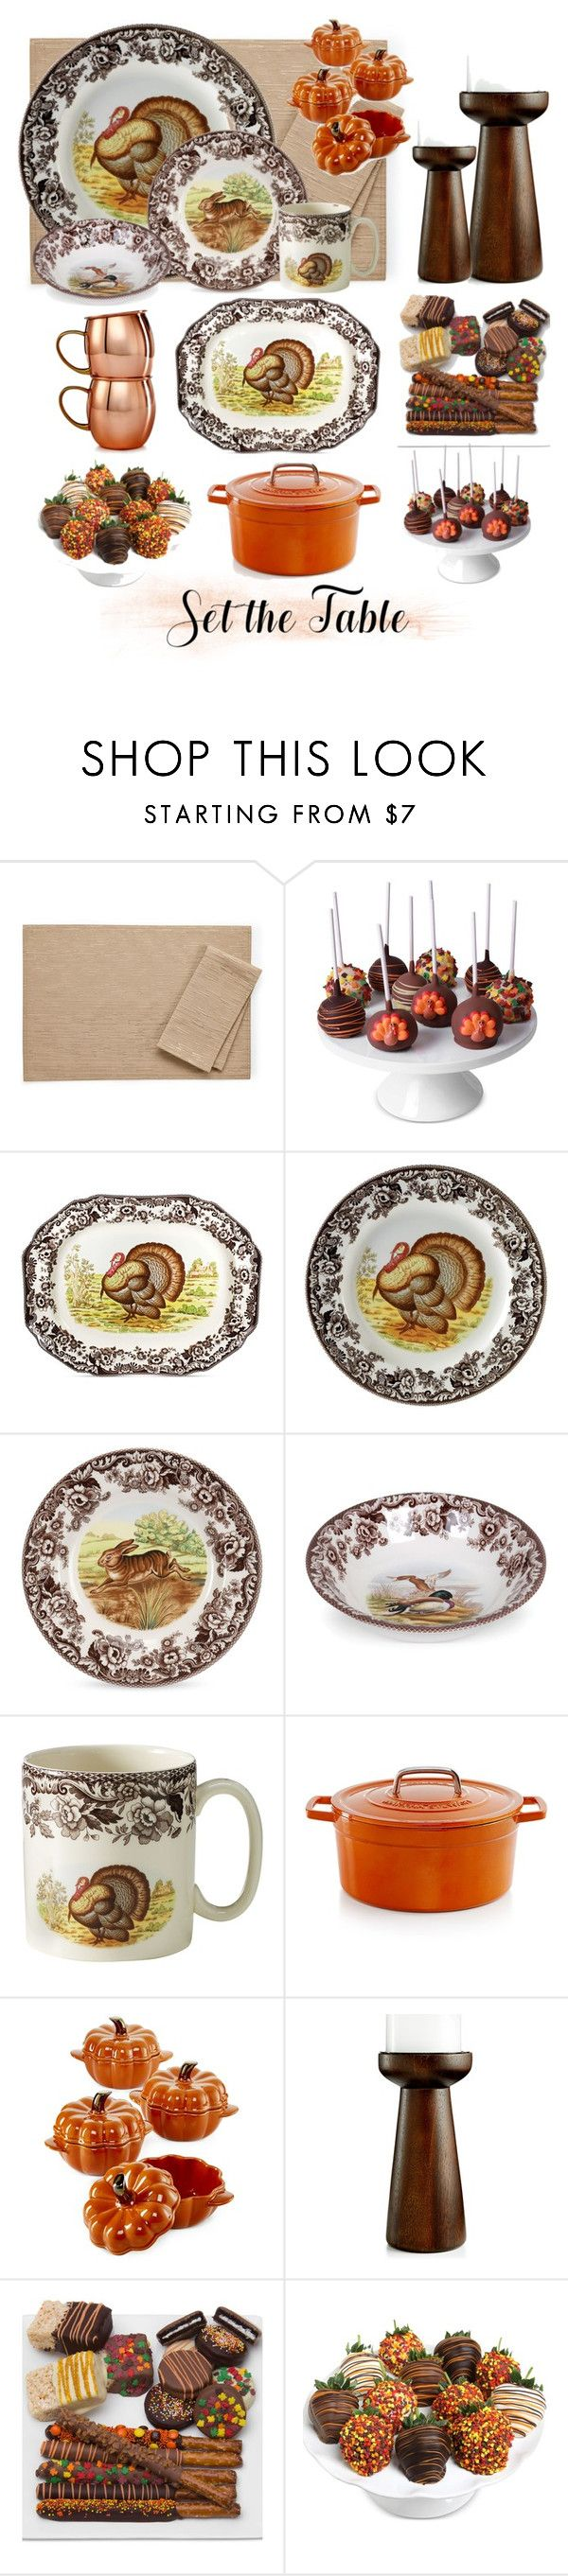 """Thanksgiving Table"" by rae-ann-stillwagon ❤ liked on Polyvore featuring interior, interiors, interior design, home, home decor, interior decorating, Bardwil, Golden Edibles, Spode and Martha Stewart"